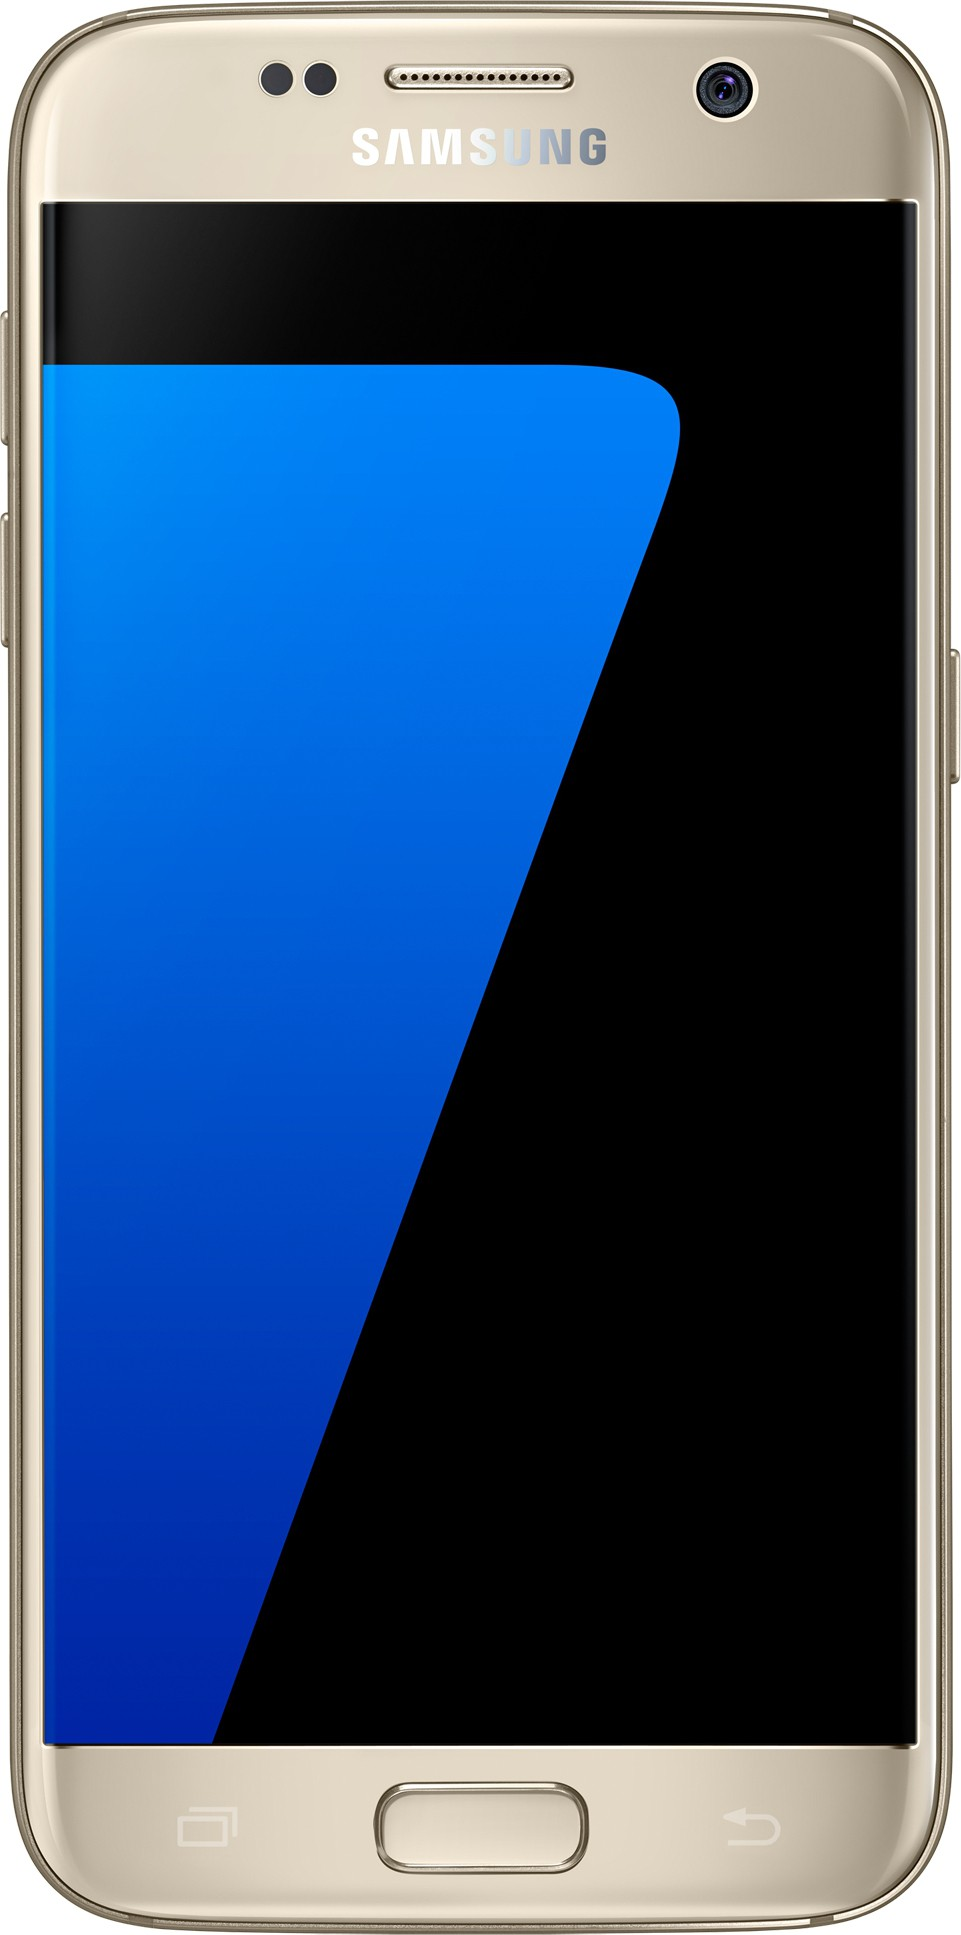 Deals - Bangalore - Samsung Galaxy S7 <br> Now ₹43,400<br> Category - mobiles_and_accessories<br> Business - Flipkart.com